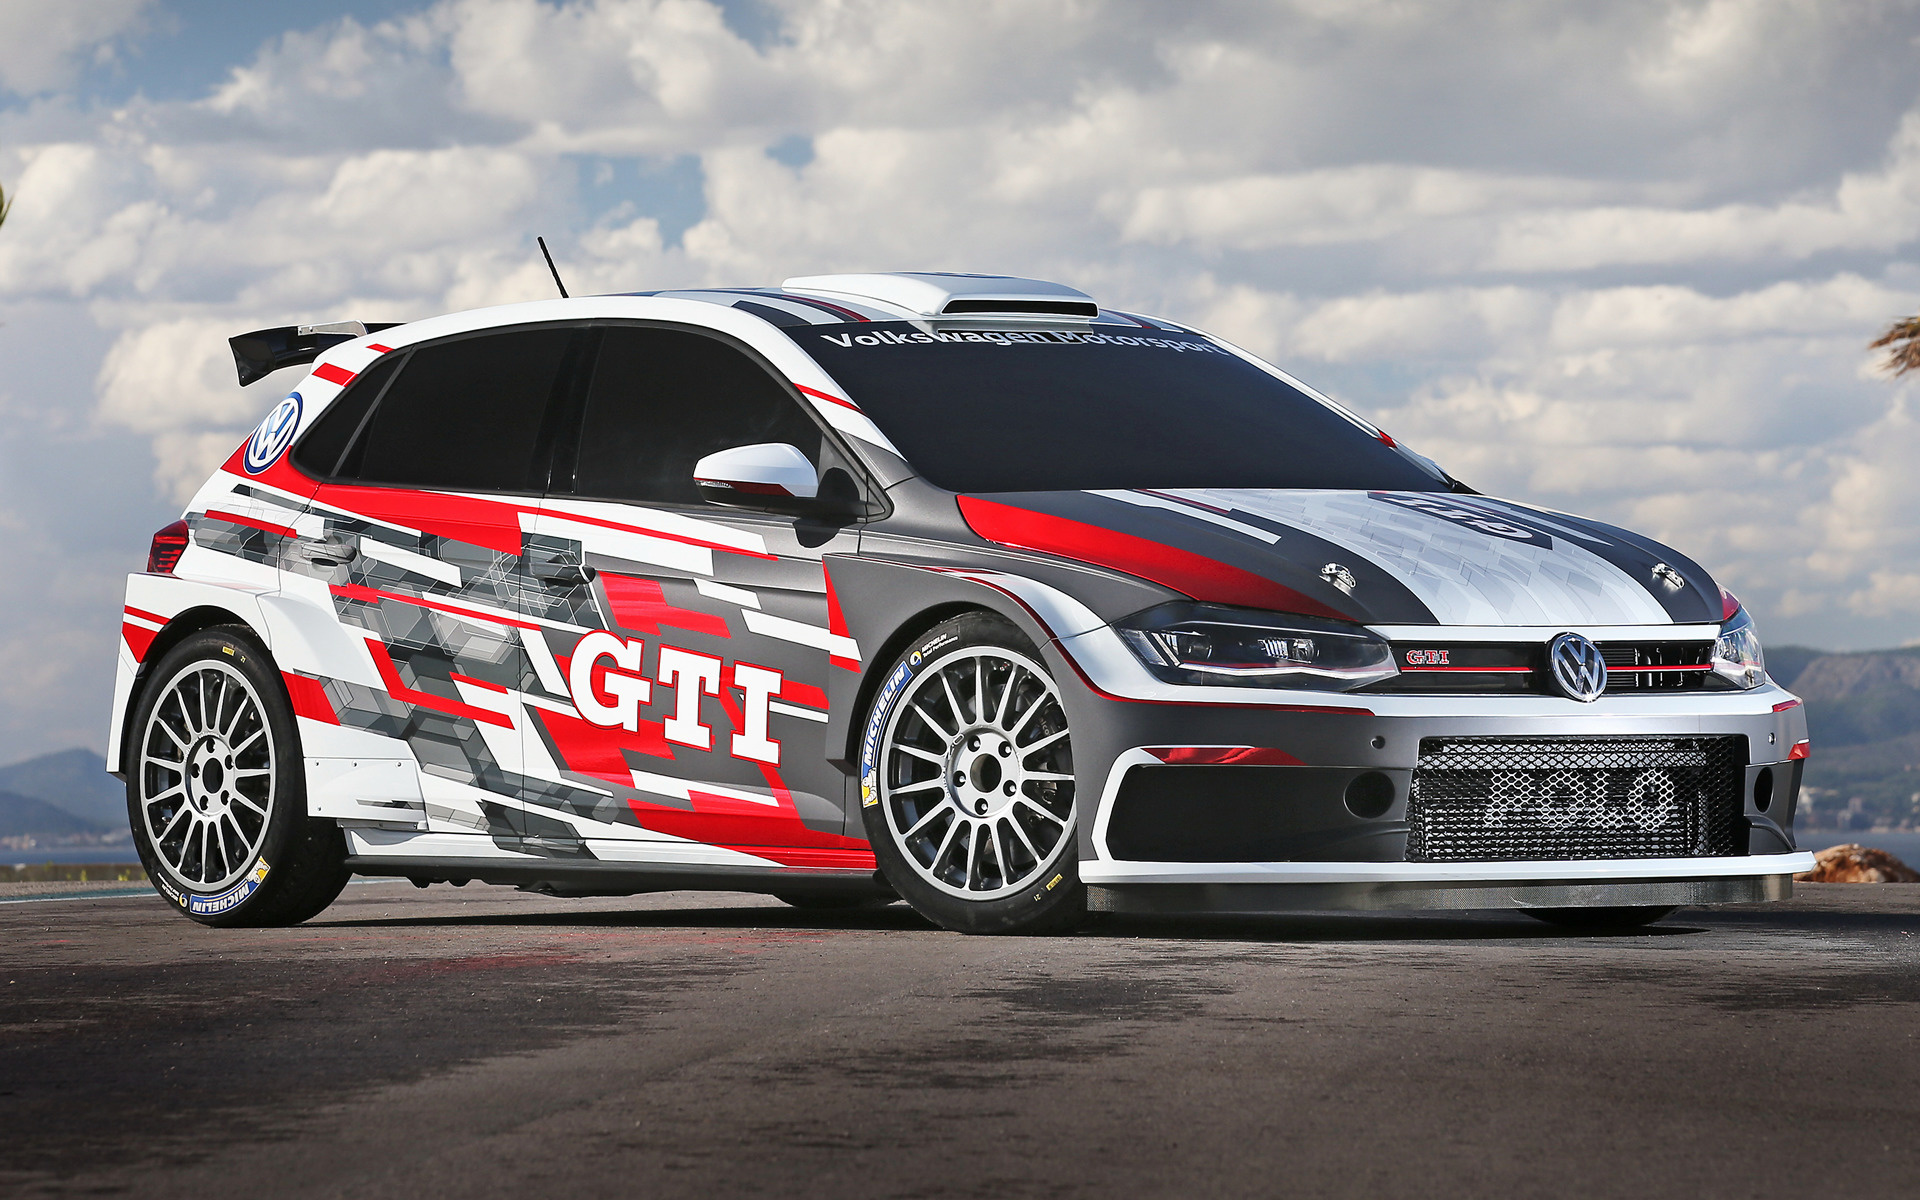 Volkswagen Polo Gti R5 2018 Wallpapers And Hd Images